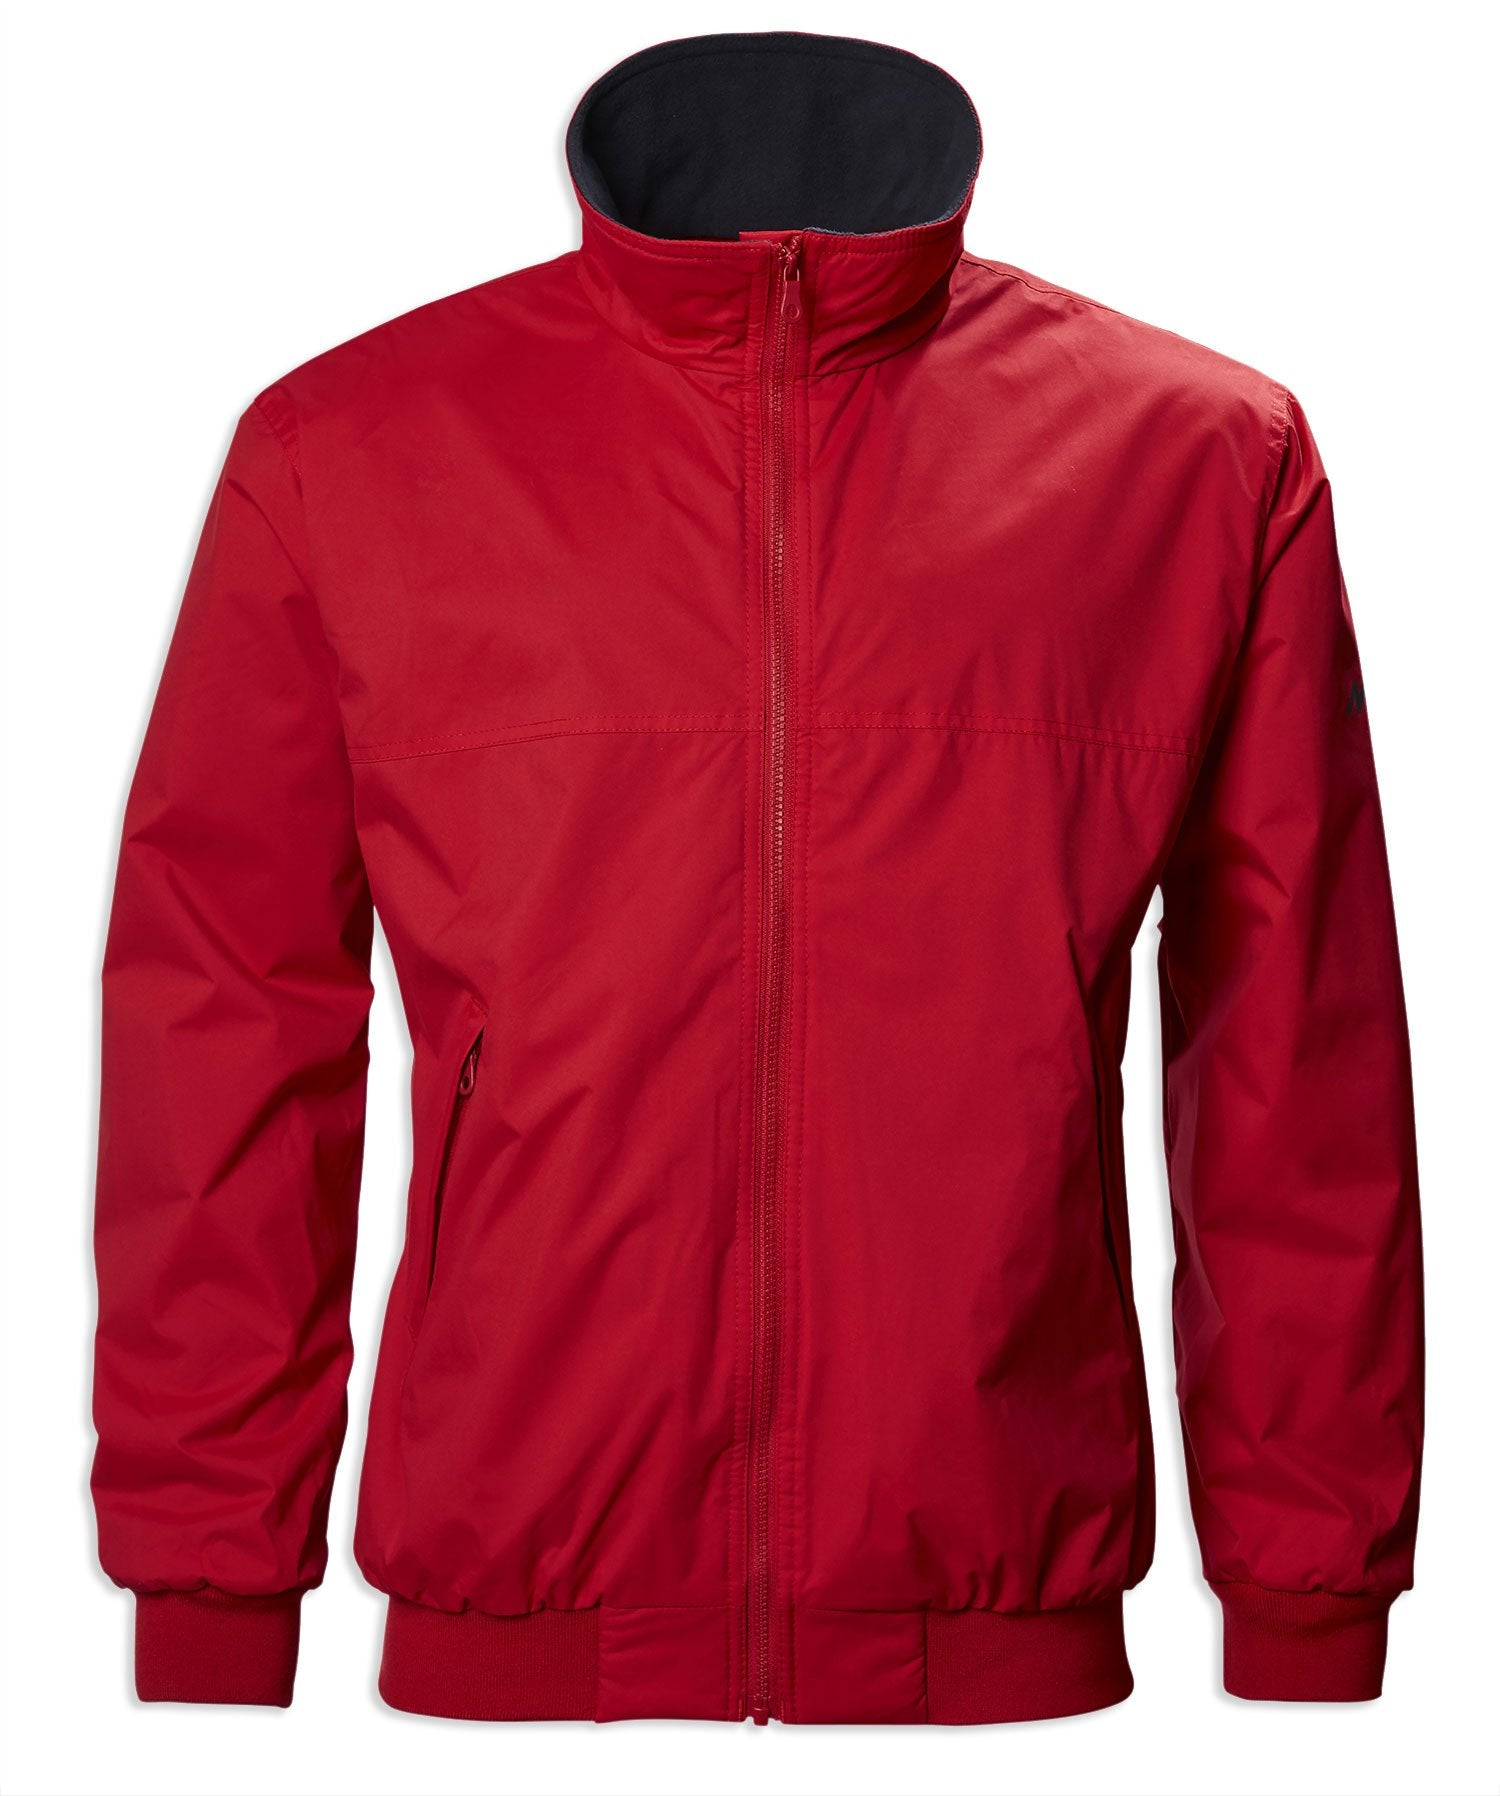 True Red Musto Classic Snug Blouson Jacket